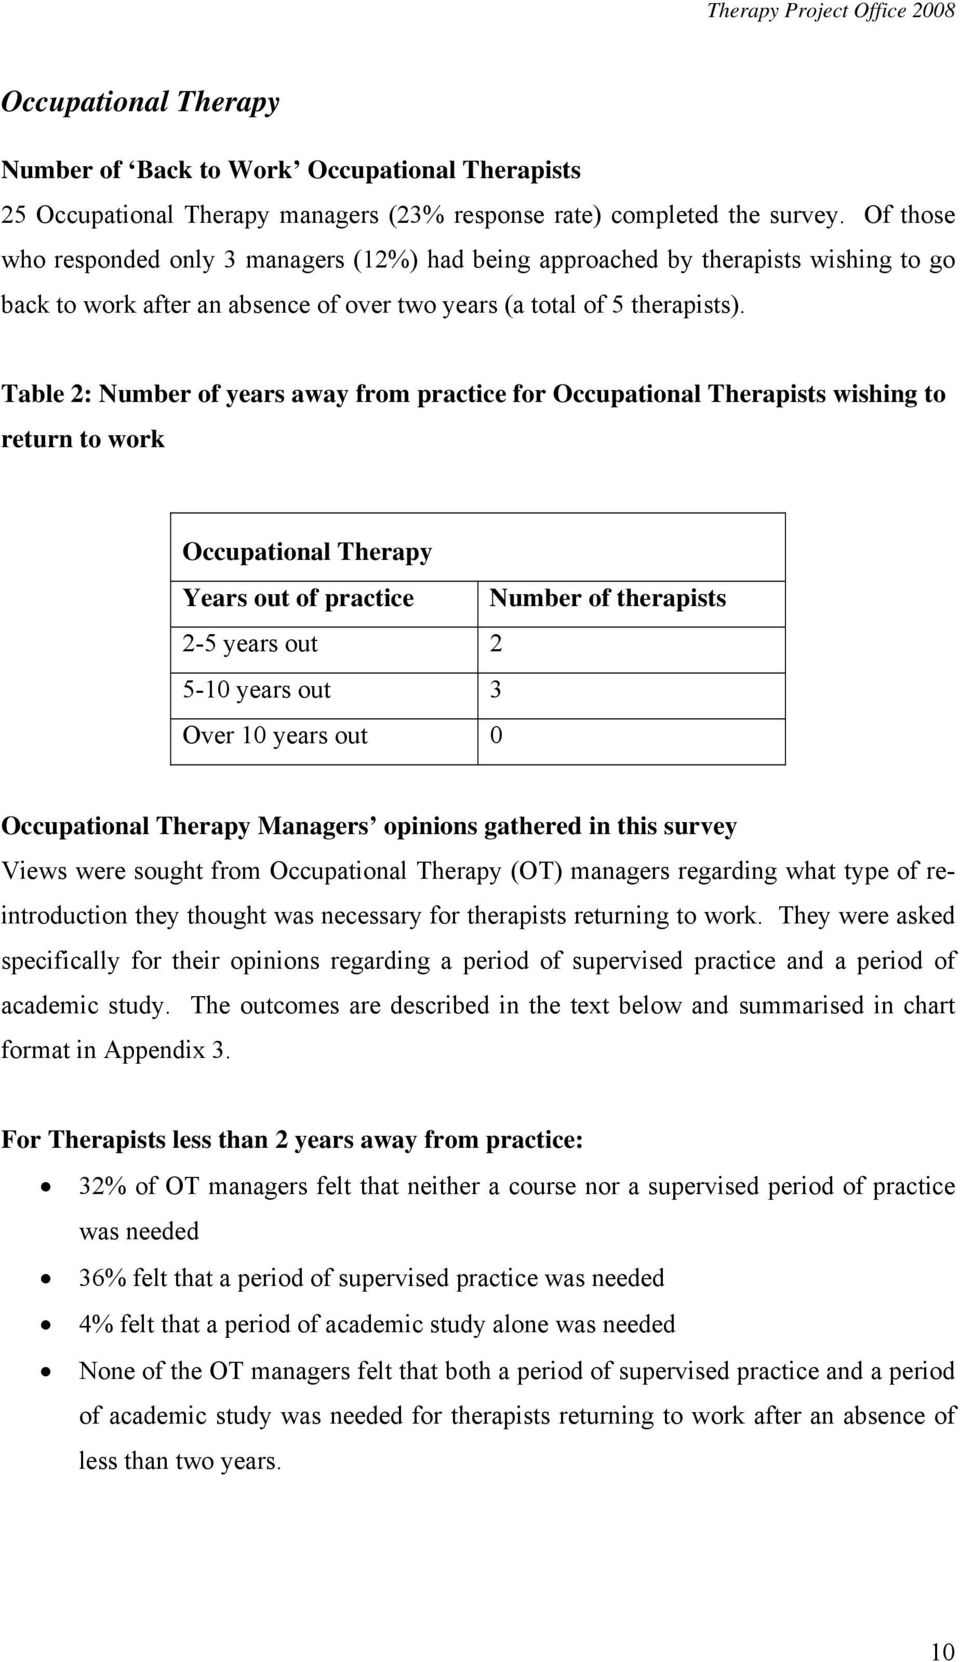 Table 2: Number of years away from practice for Occupational Therapists wishing to return to work Occupational Therapy Years out of practice Number of therapists 2-5 years out 2 5-10 years out 3 Over